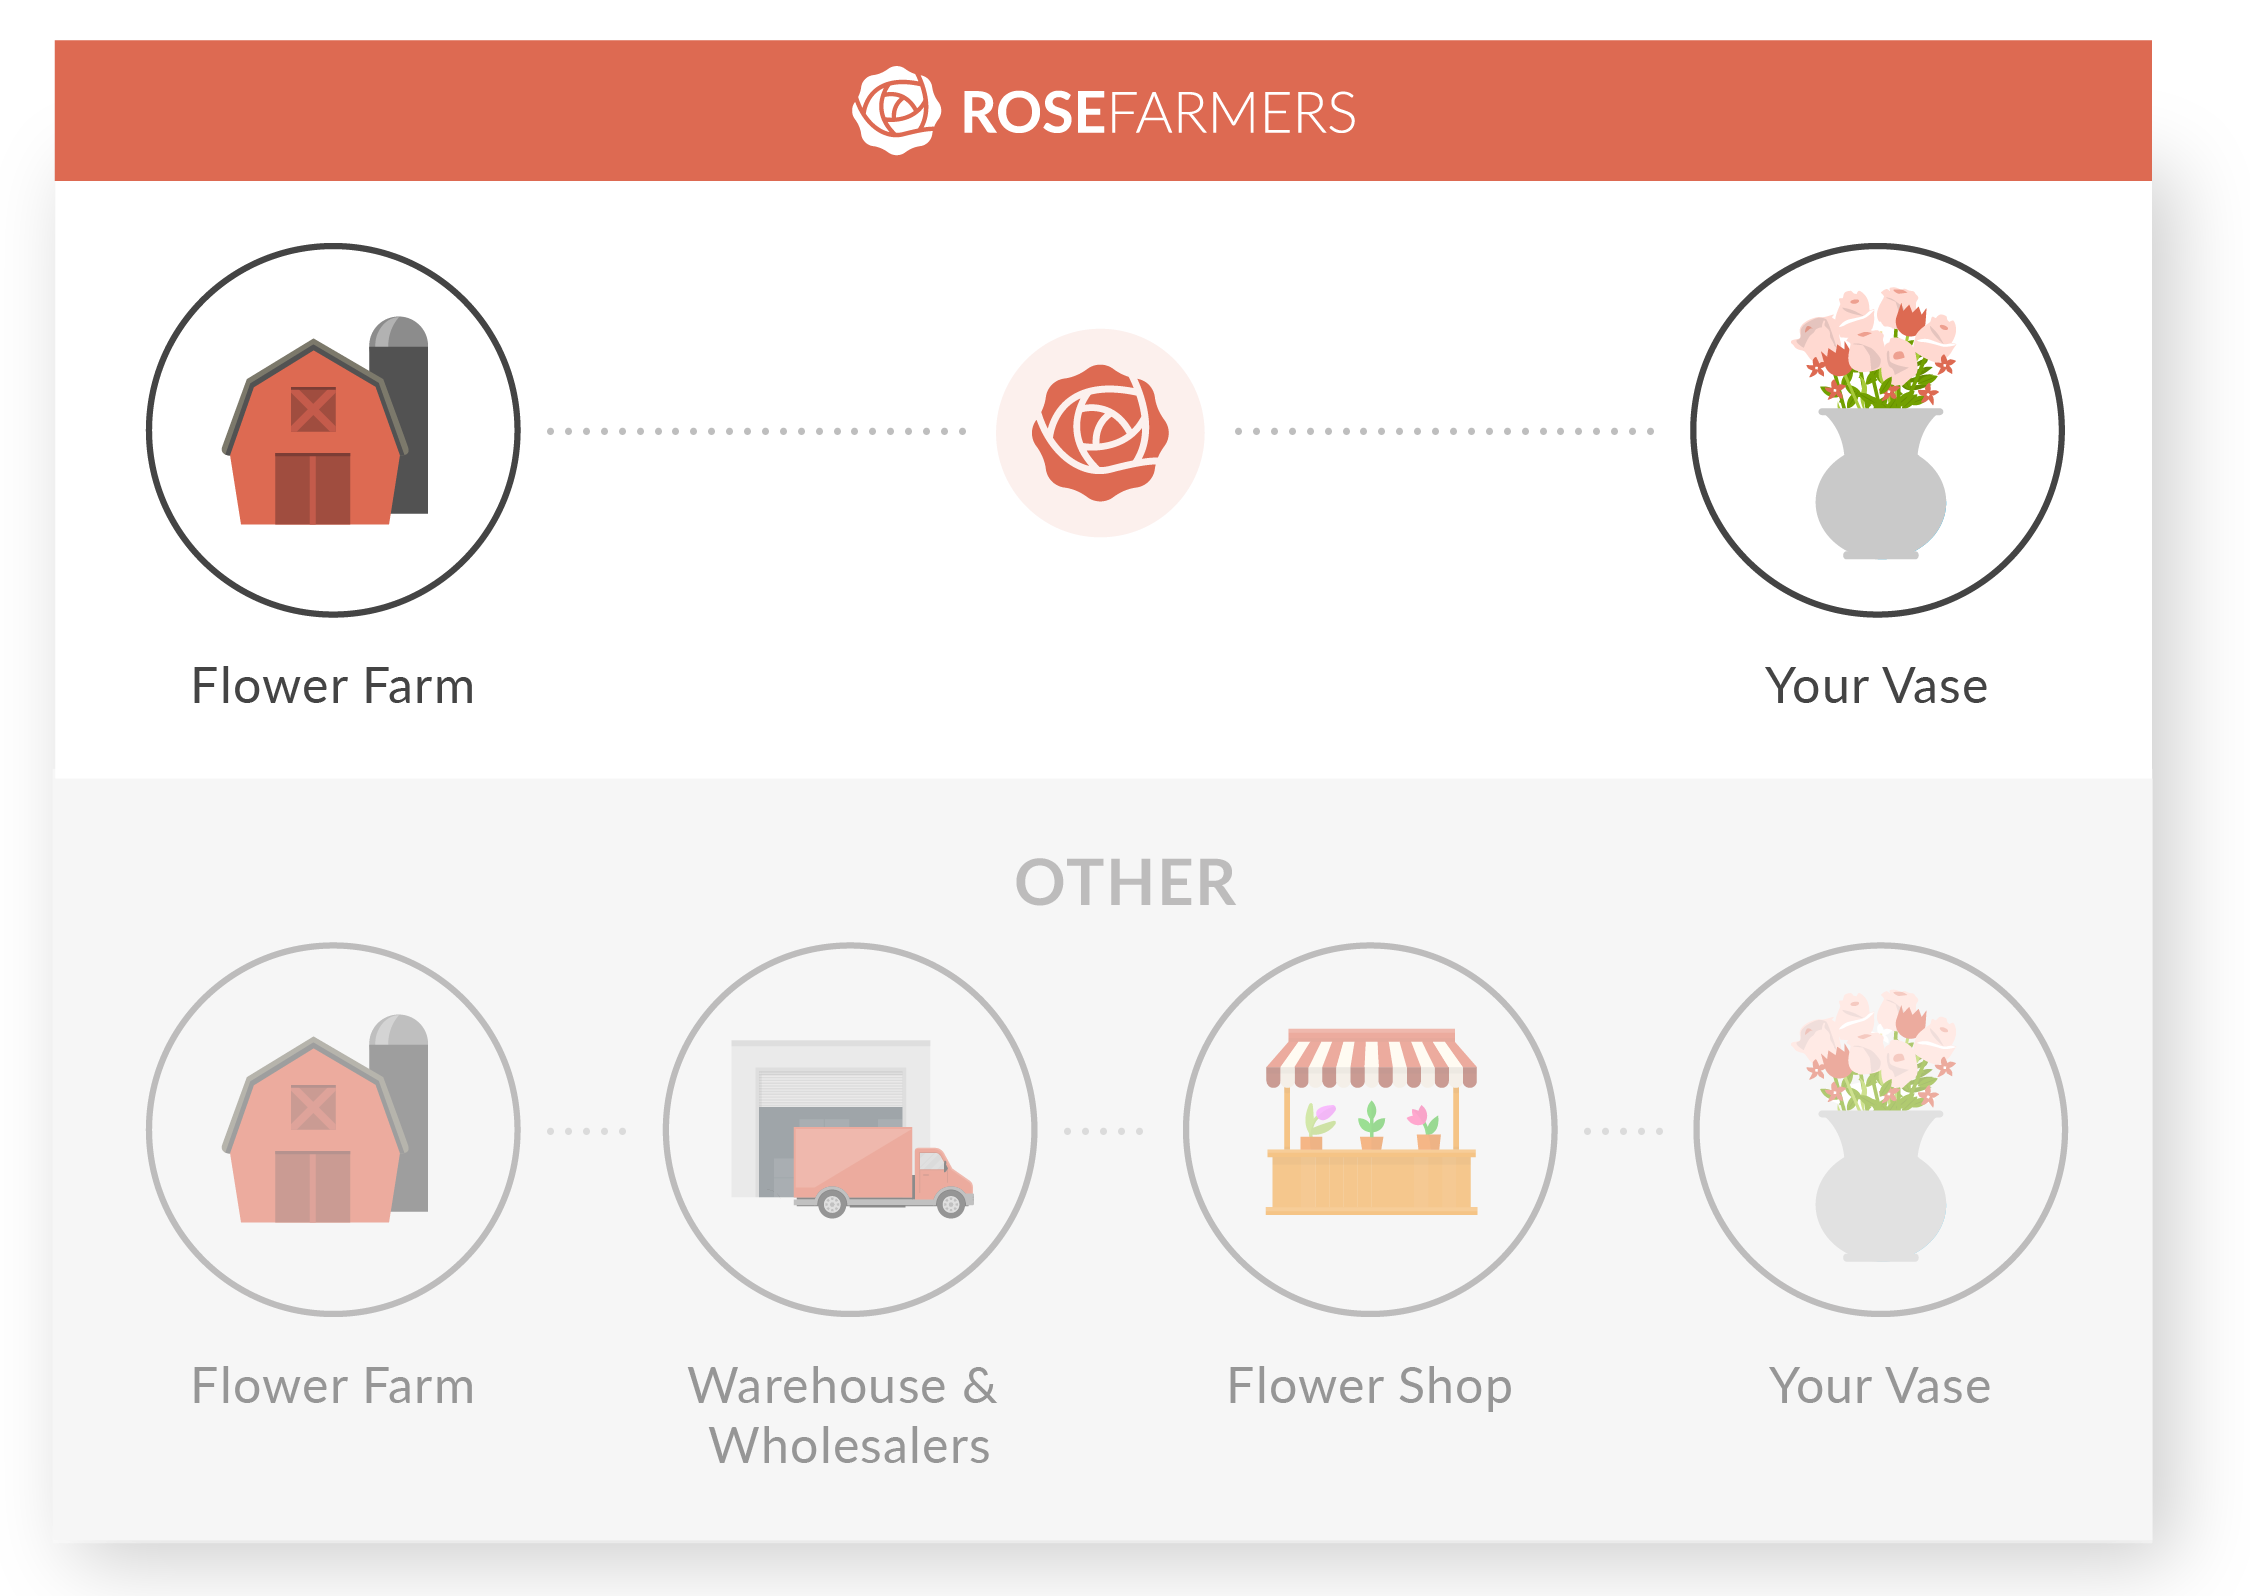 Rose Farmers - Farm Fresh Roses Direct to Your Door